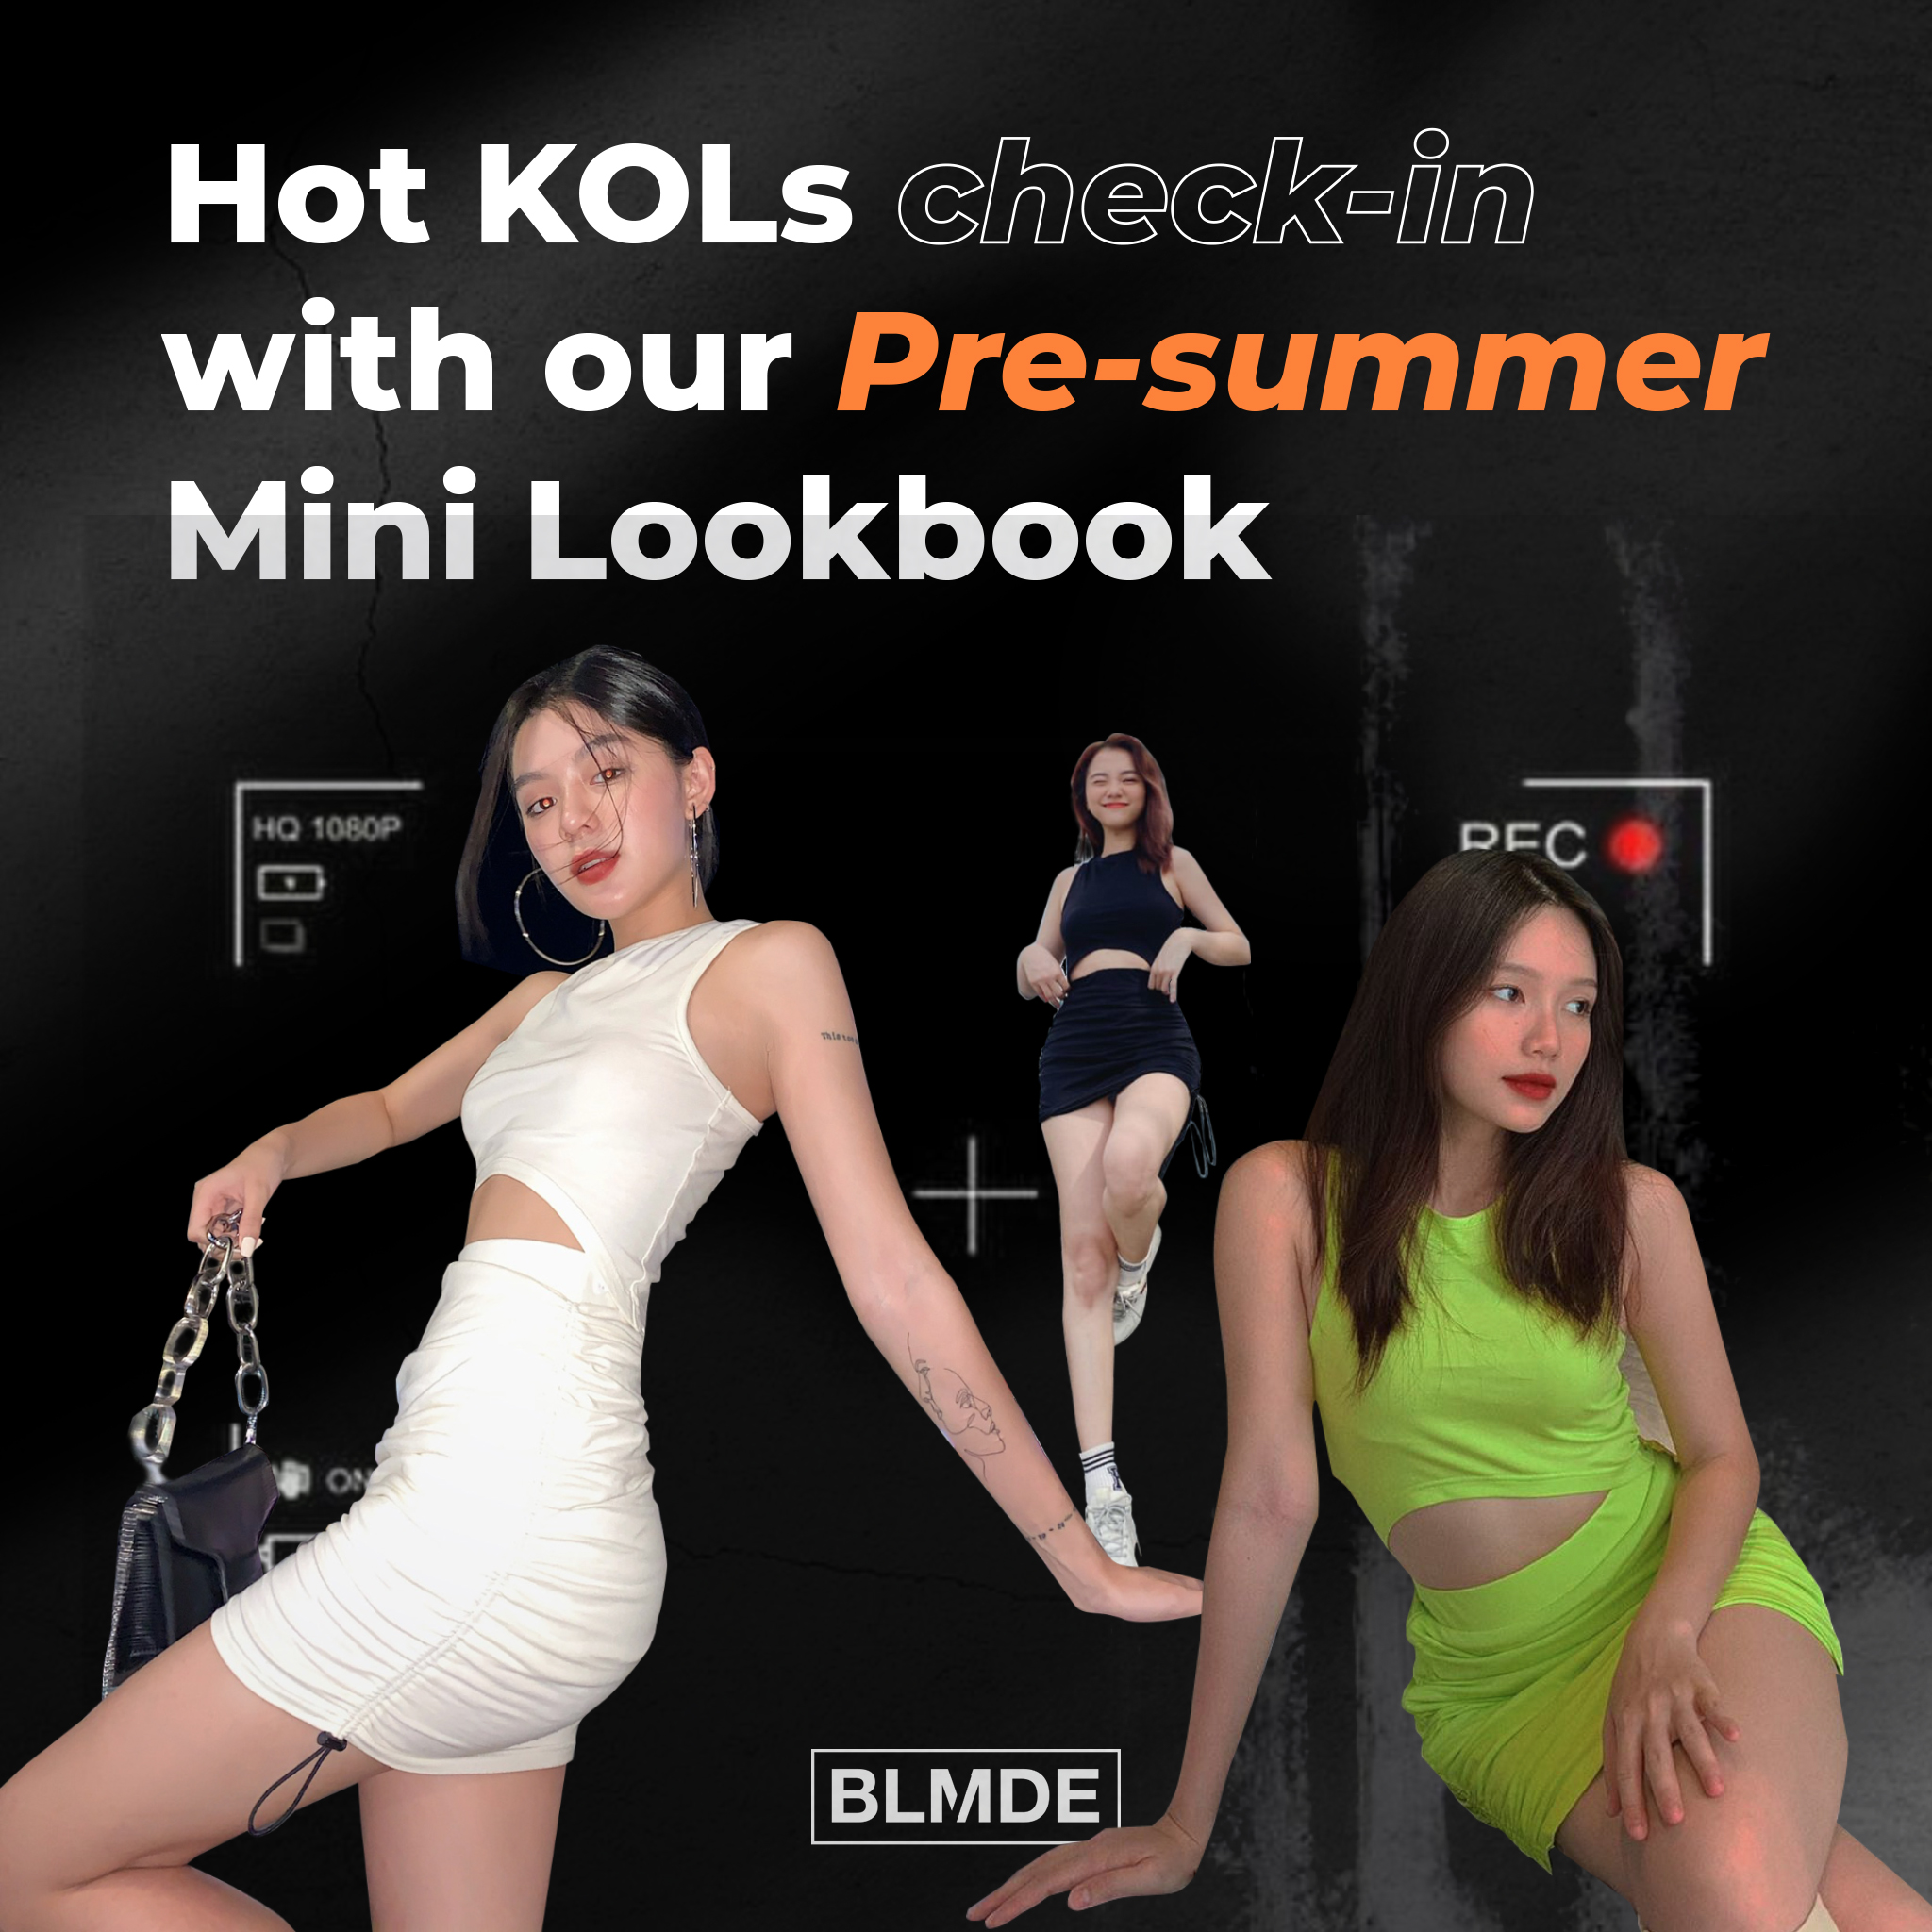 theo chan nhung co nang hot kols kham pha pre summer mini lookbook cua bloomode